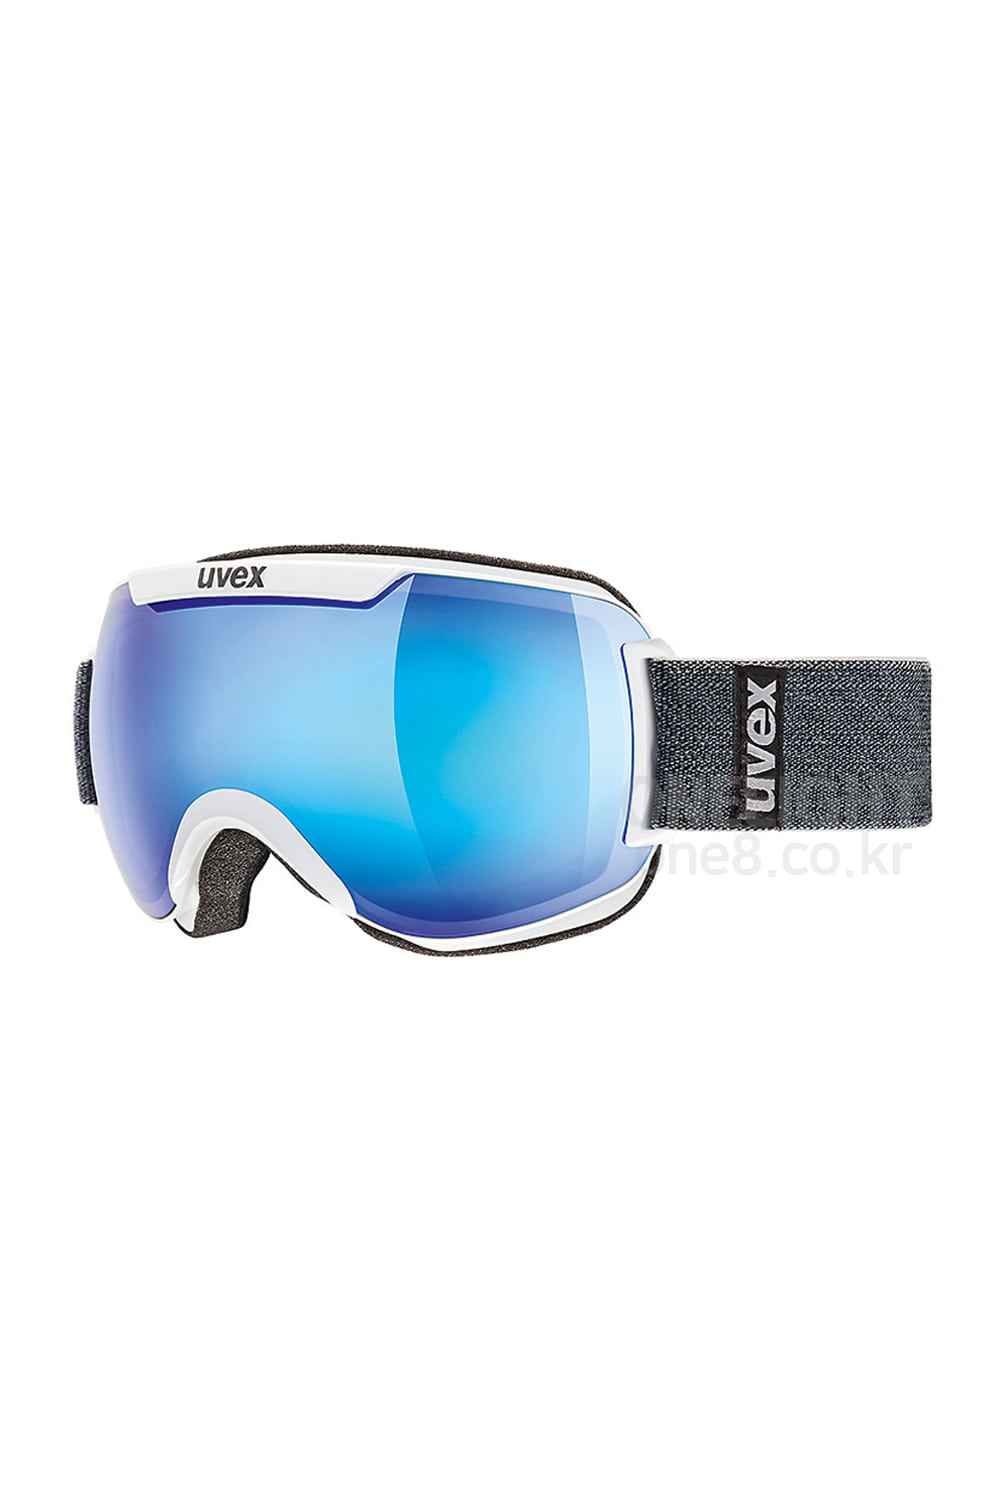 우벡스 고글 다운힐 2000 FM UVEX_(08) UVEX DOWNHILL 2000 FM-ASIAN FIT_WHITE/MIRROR BLUE-S2_아시안핏/주야겸용_DBUV808WH